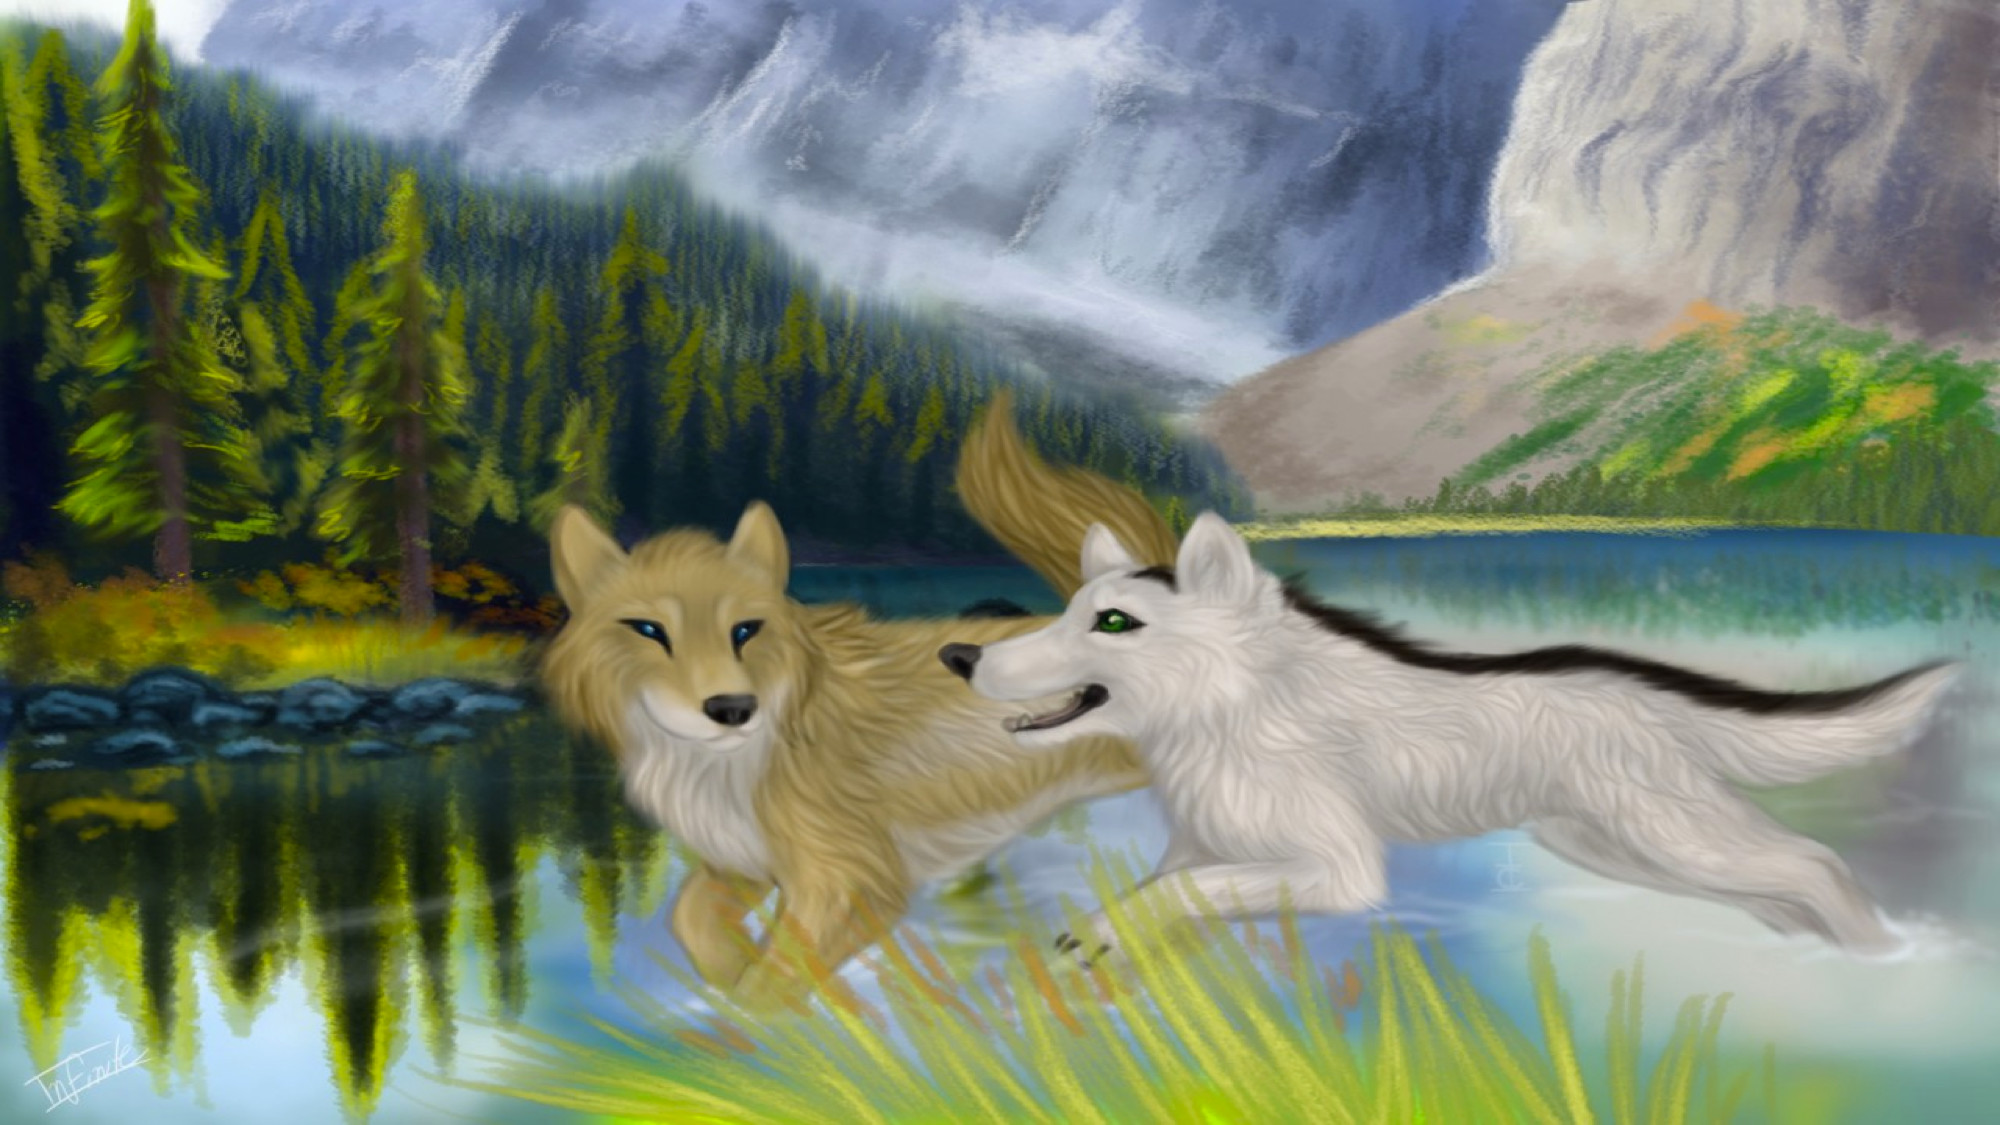 Res: 2000x1125, Furries images Furry Wallpapers HD wallpaper and background photos